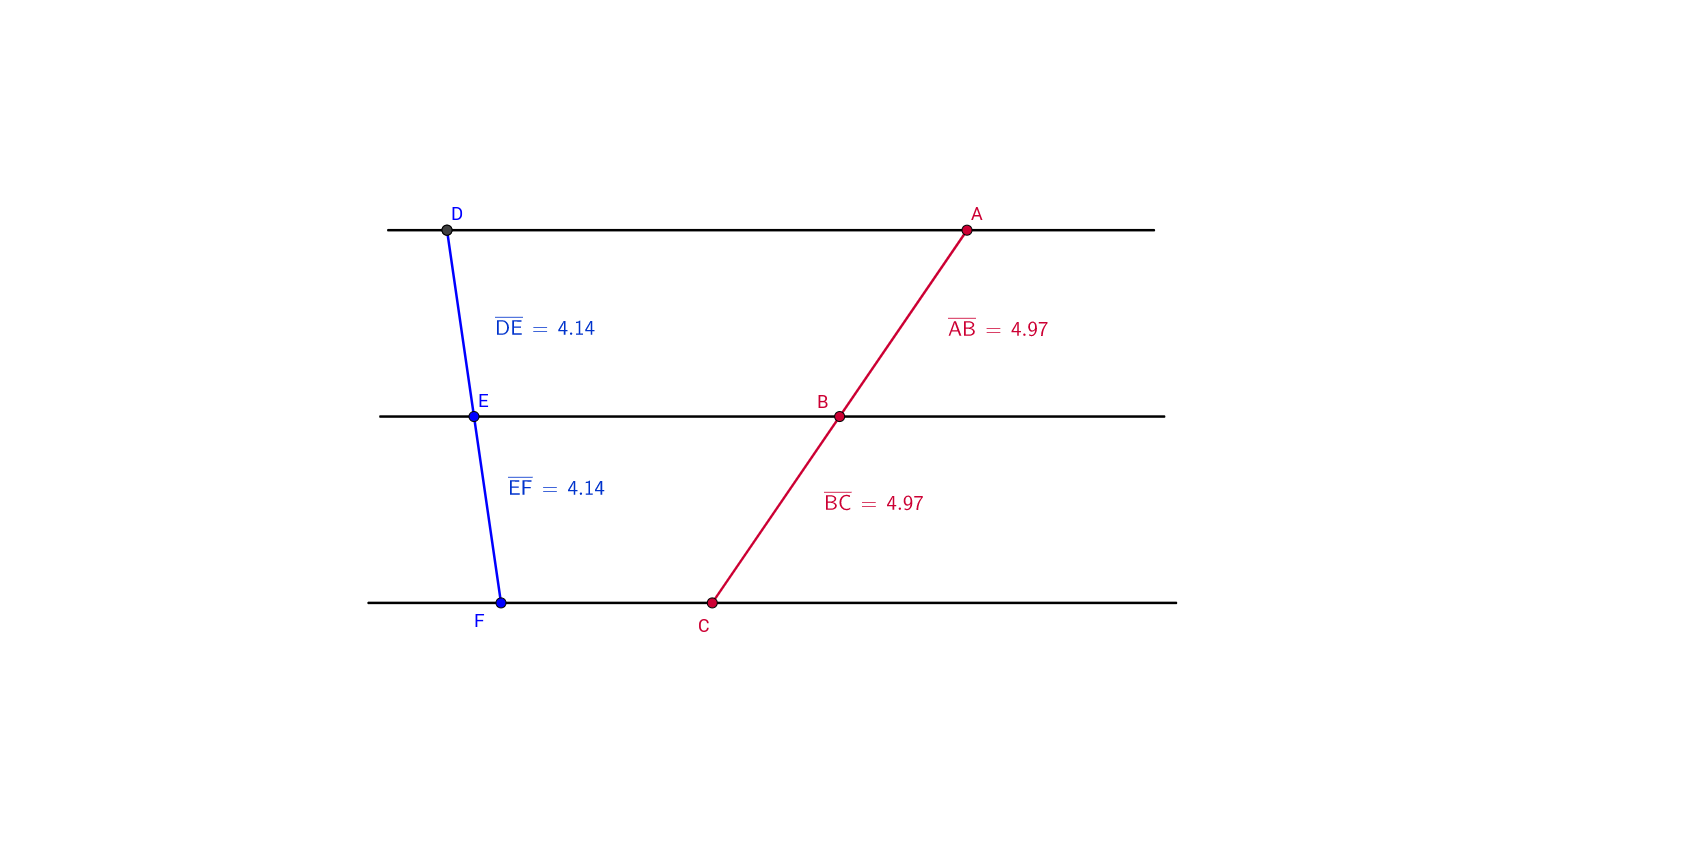 Uncategorized Parallel Lines And Transversal Worksheet theorem 11 three parallel lines cutting a transversal geogebra drag the points to change position of transversals one so that de and ef are no longer equal